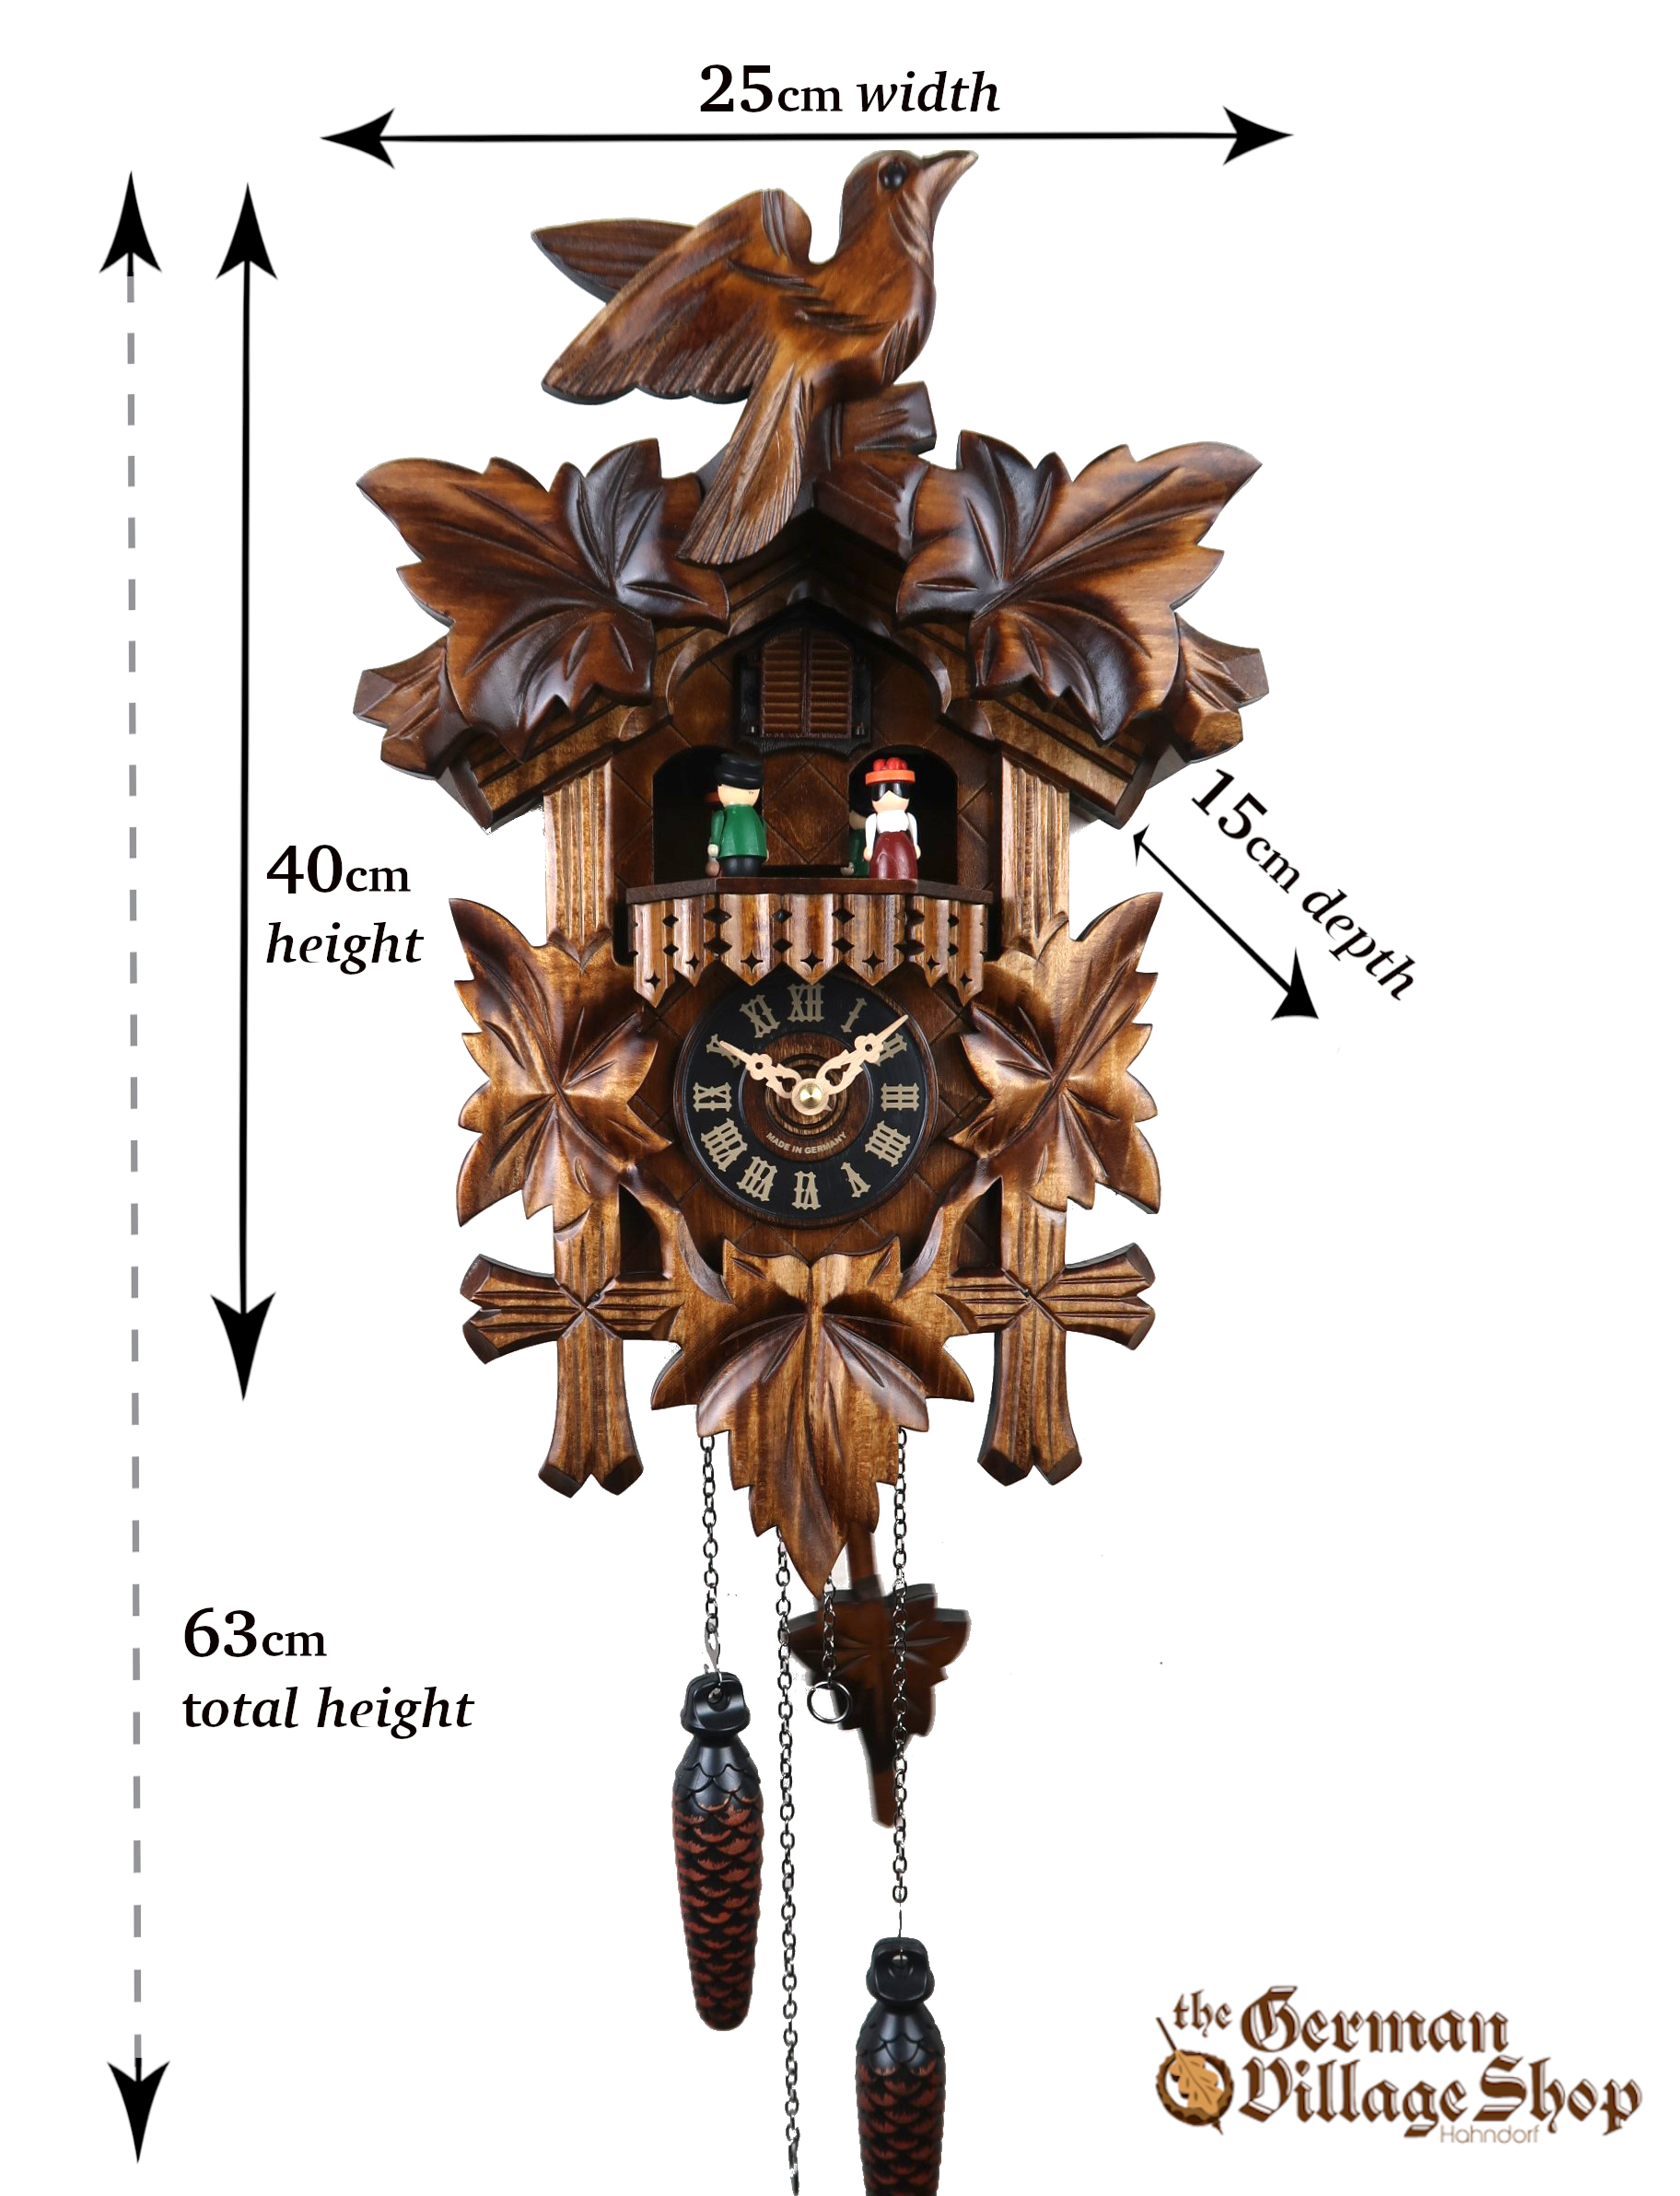 German Cuckoo Clock imported and sold in Australia